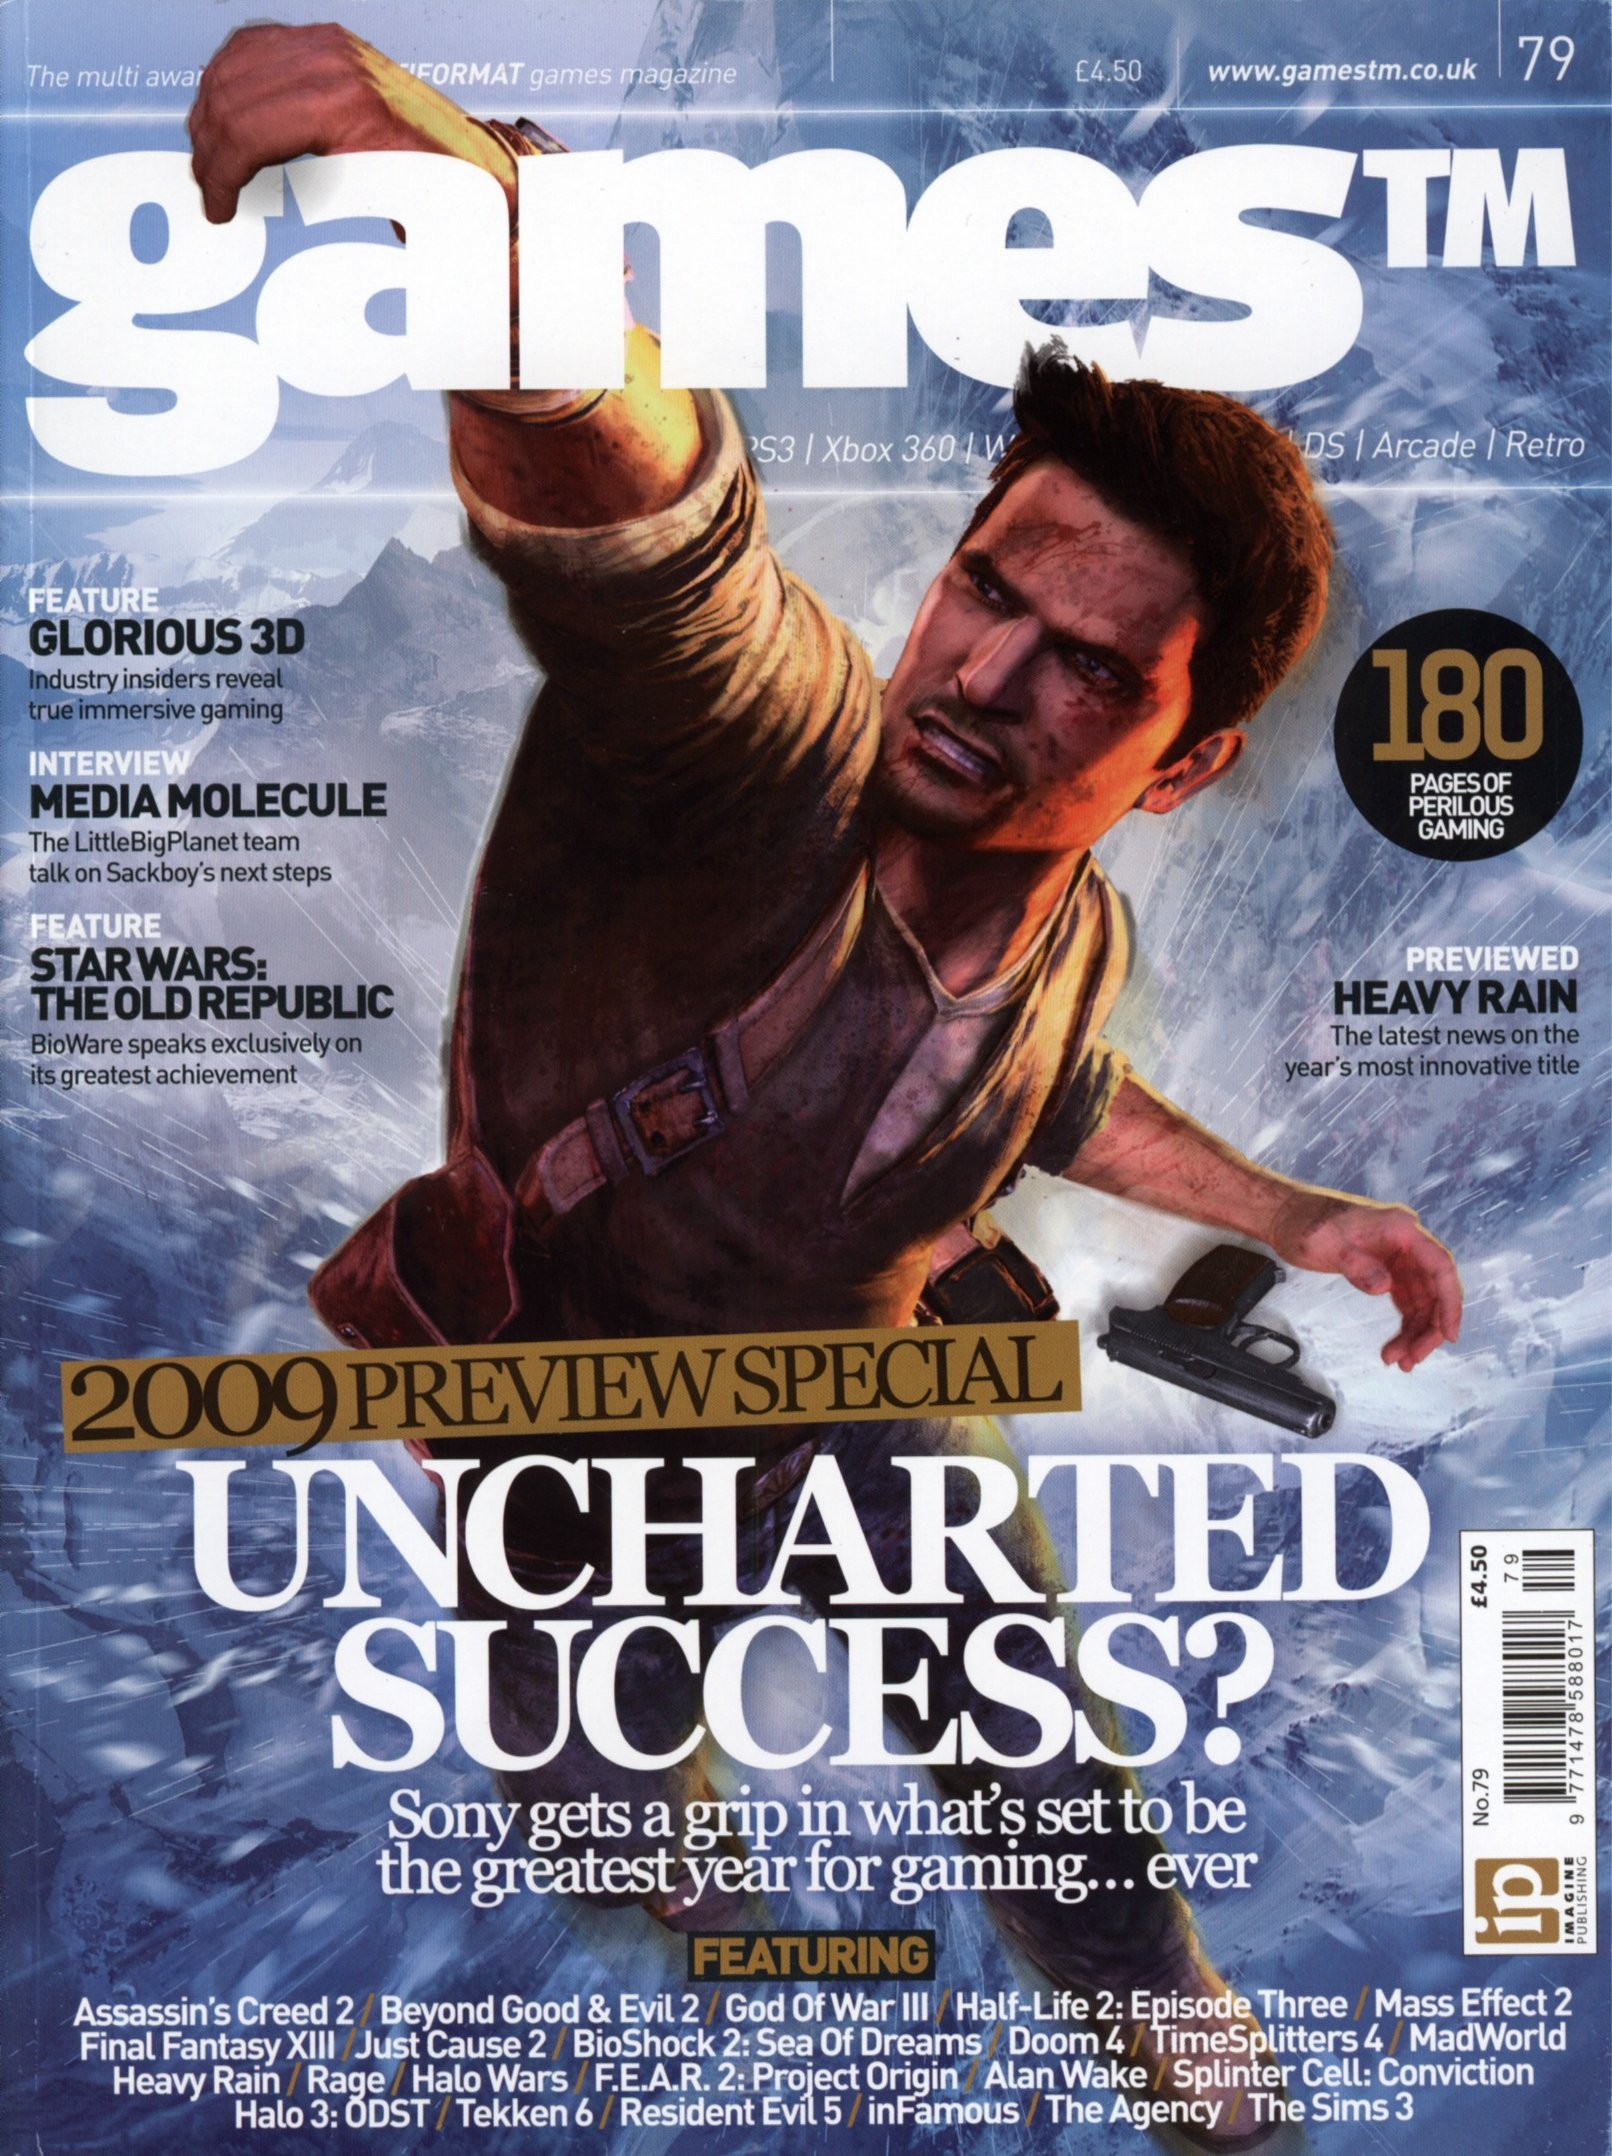 Games TM Issue 079 (January 2009)